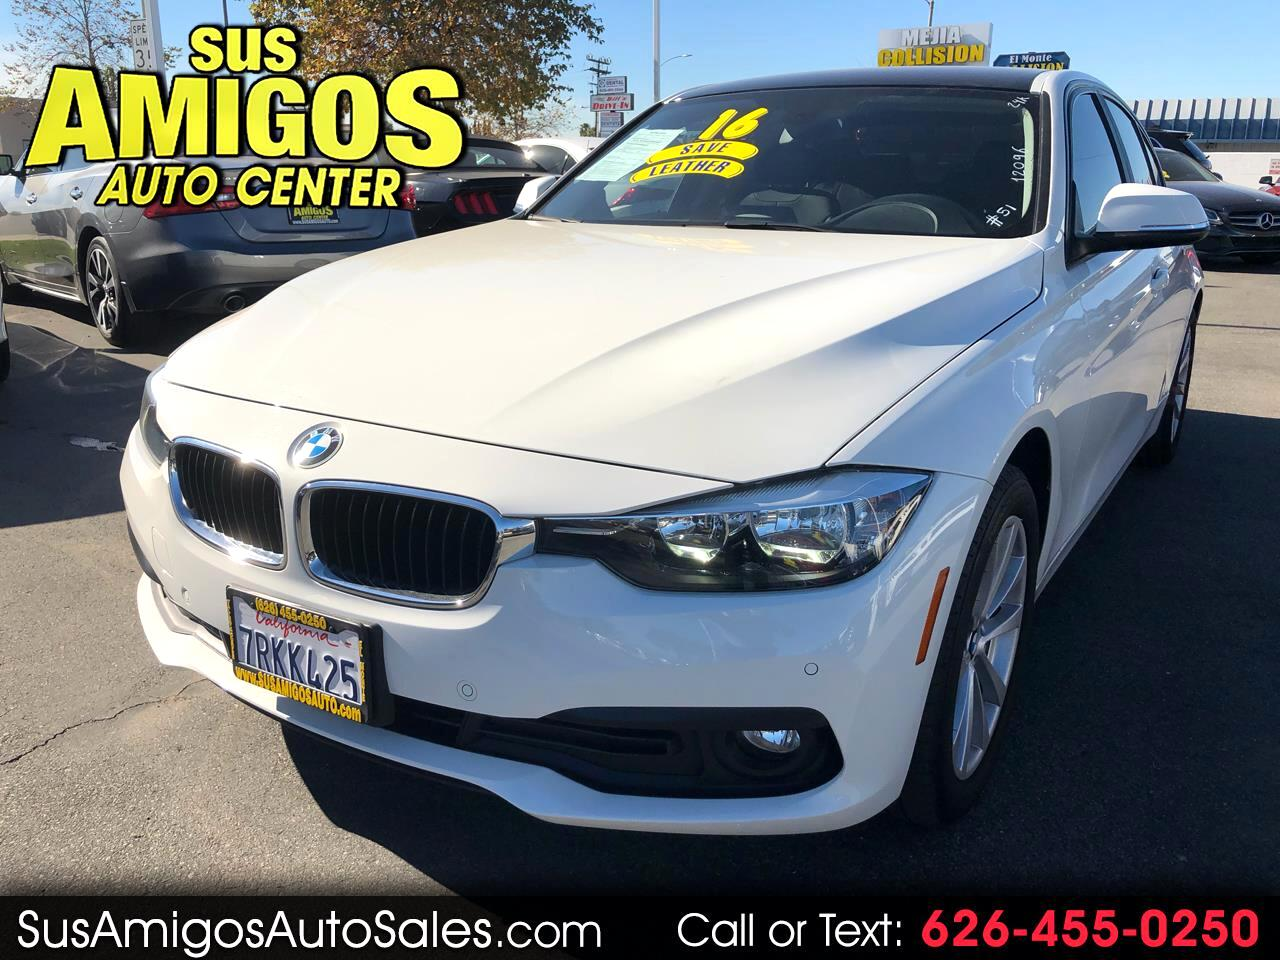 Used Cars For Sale Sus Amigos Auto Center